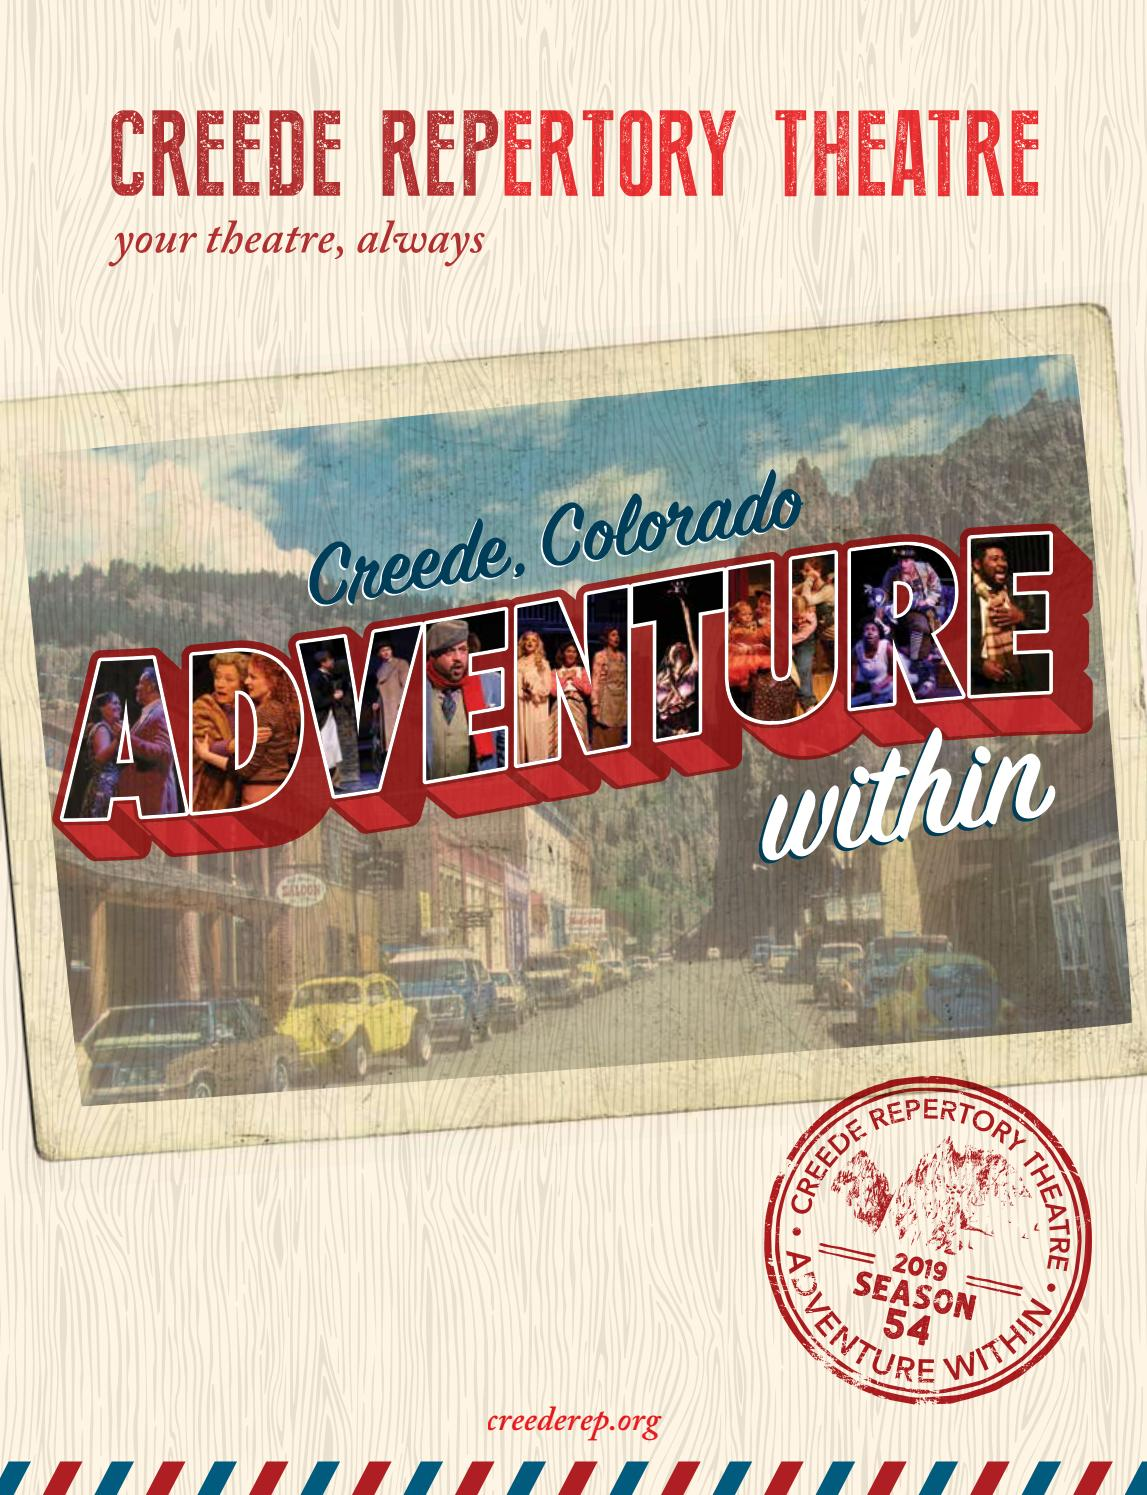 2019 Creede Repertory Theatre Season Program by Creede